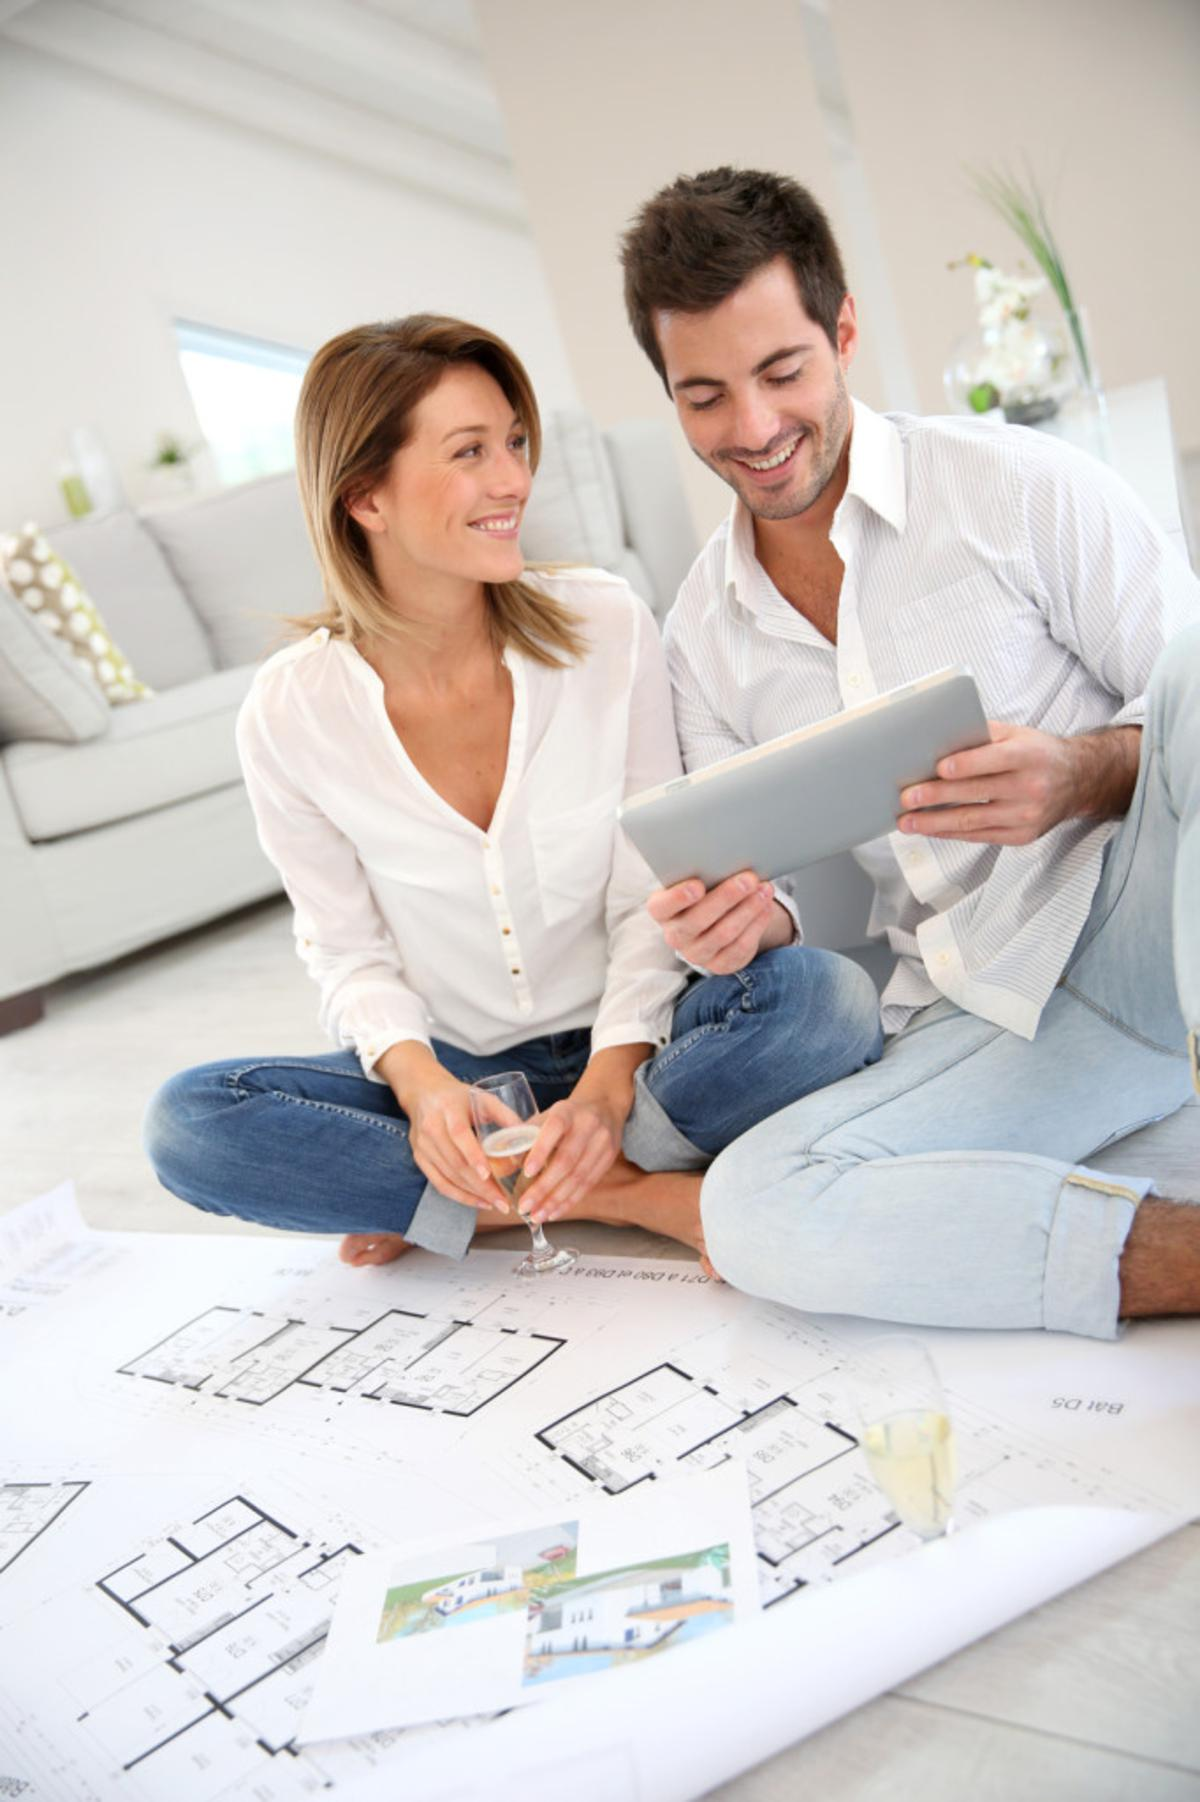 Start Planning Your Remodel Now